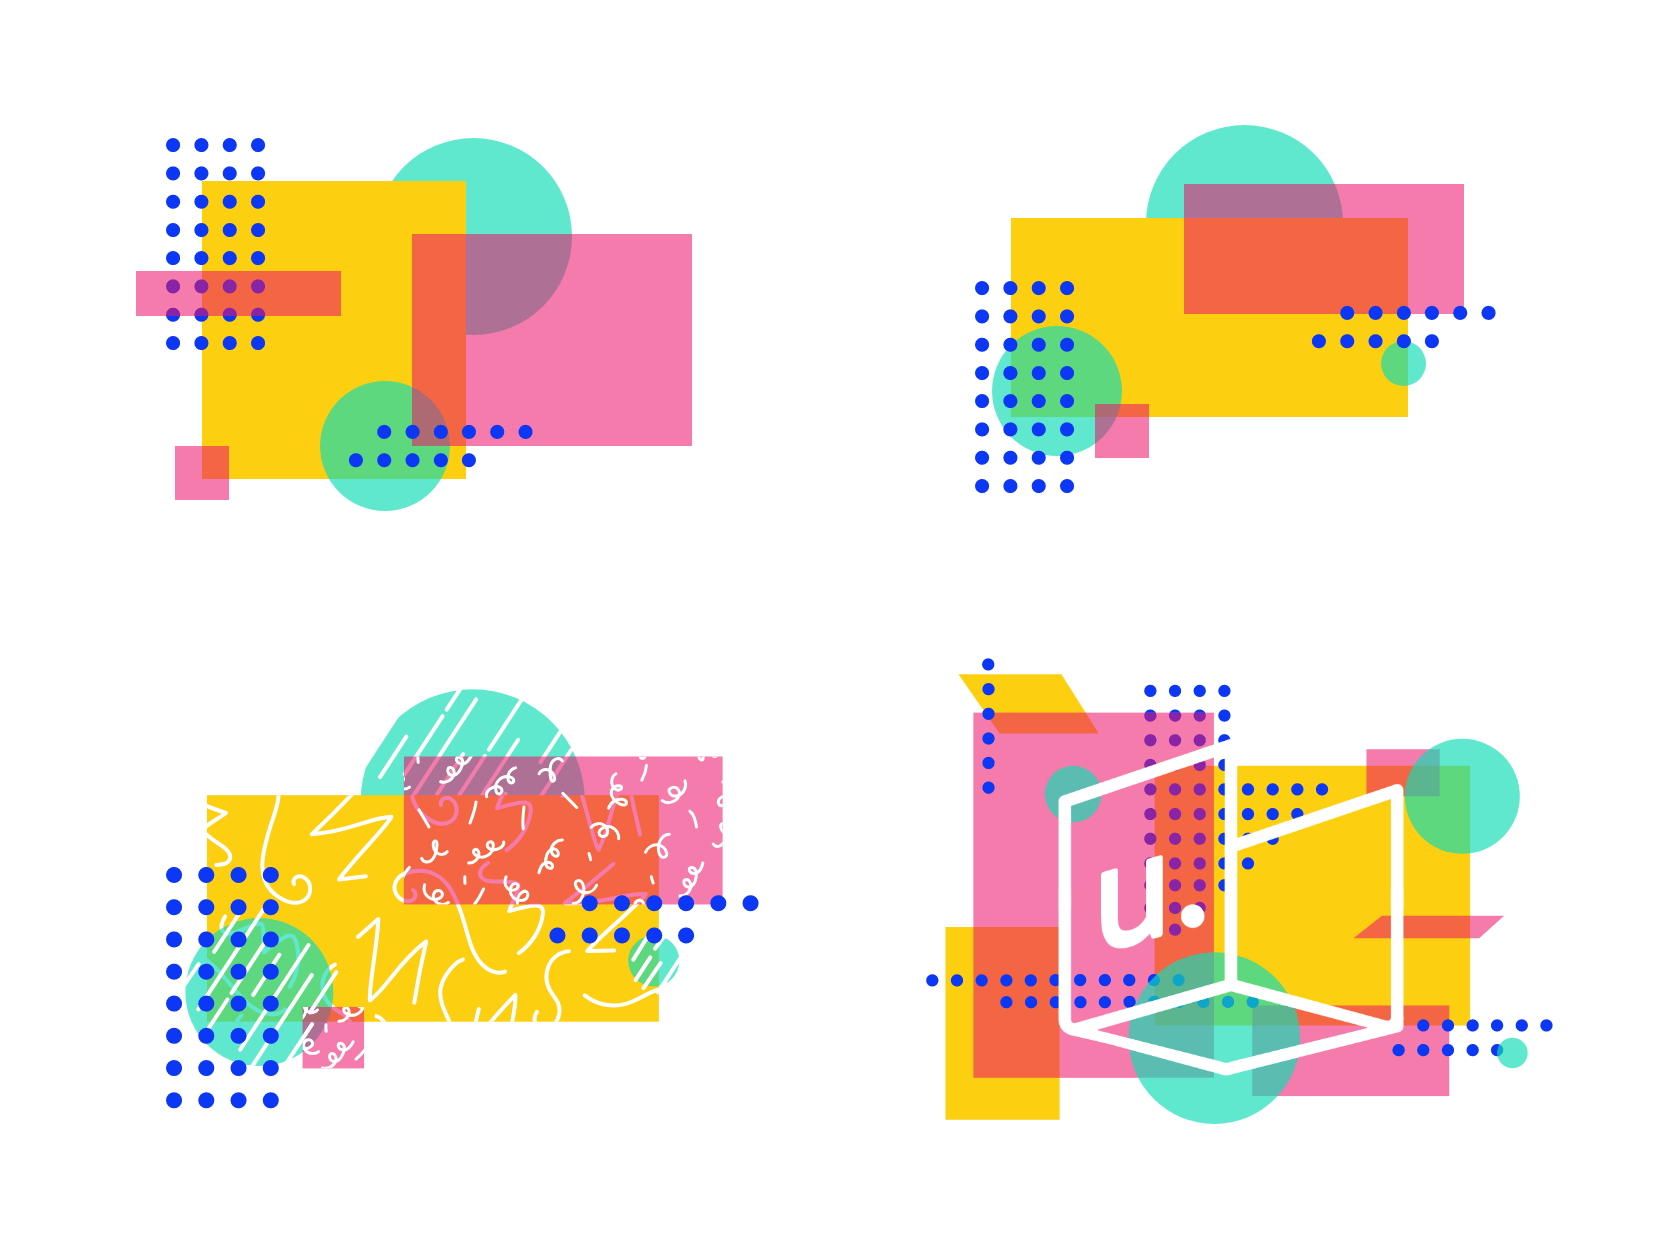 A series of four abstract illustrations using a combination of colors, shapes, and the brand sprinkles.